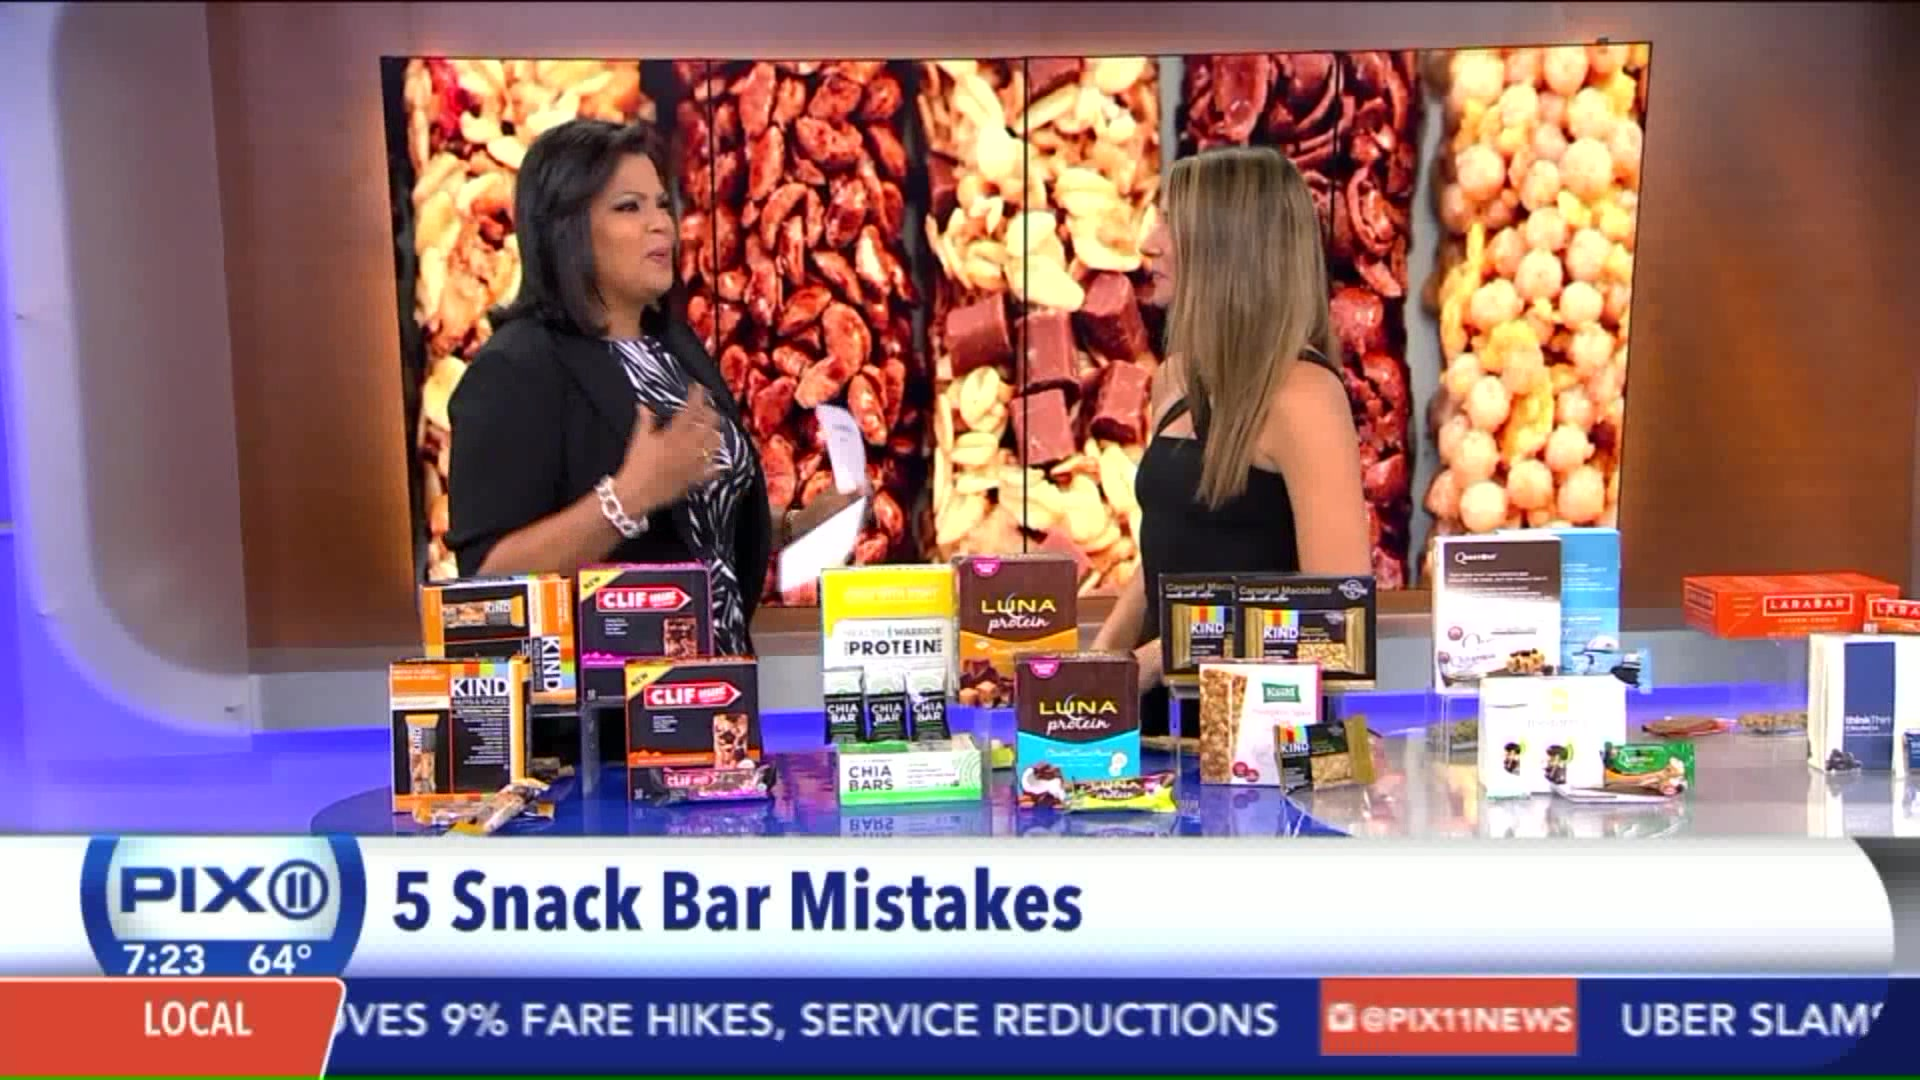 5 Common Snack Bar Mistakes